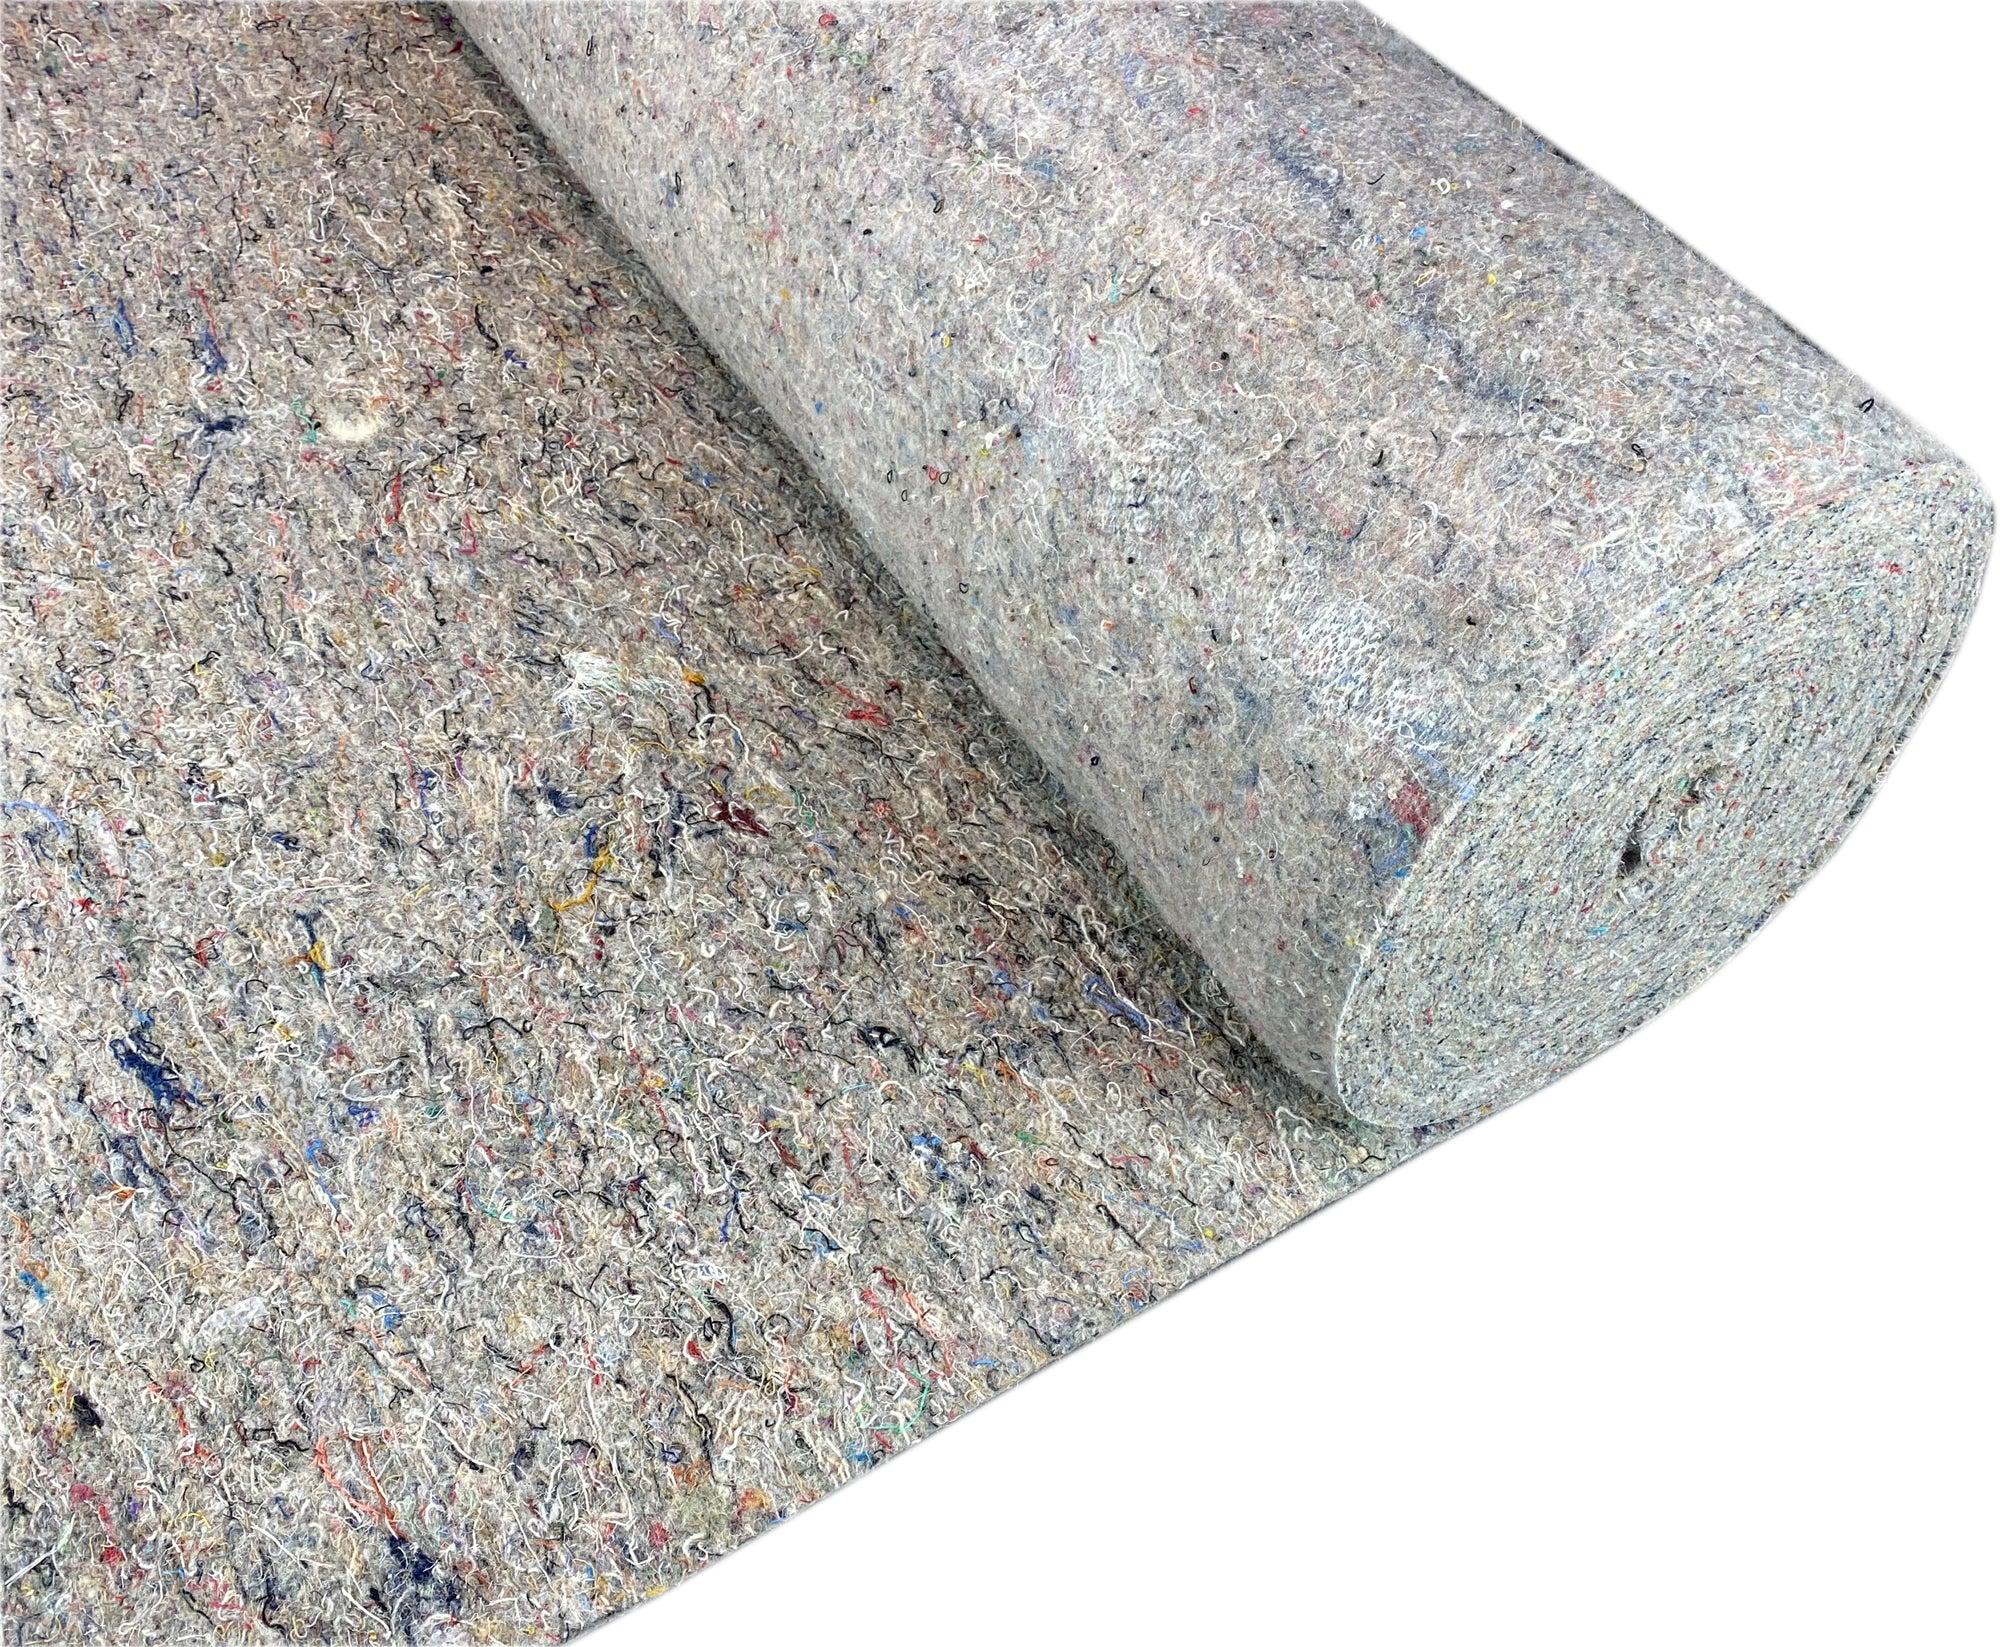 48oz Wool 12mm Thick Carpet Underlay Priced From 3 33 Per M2